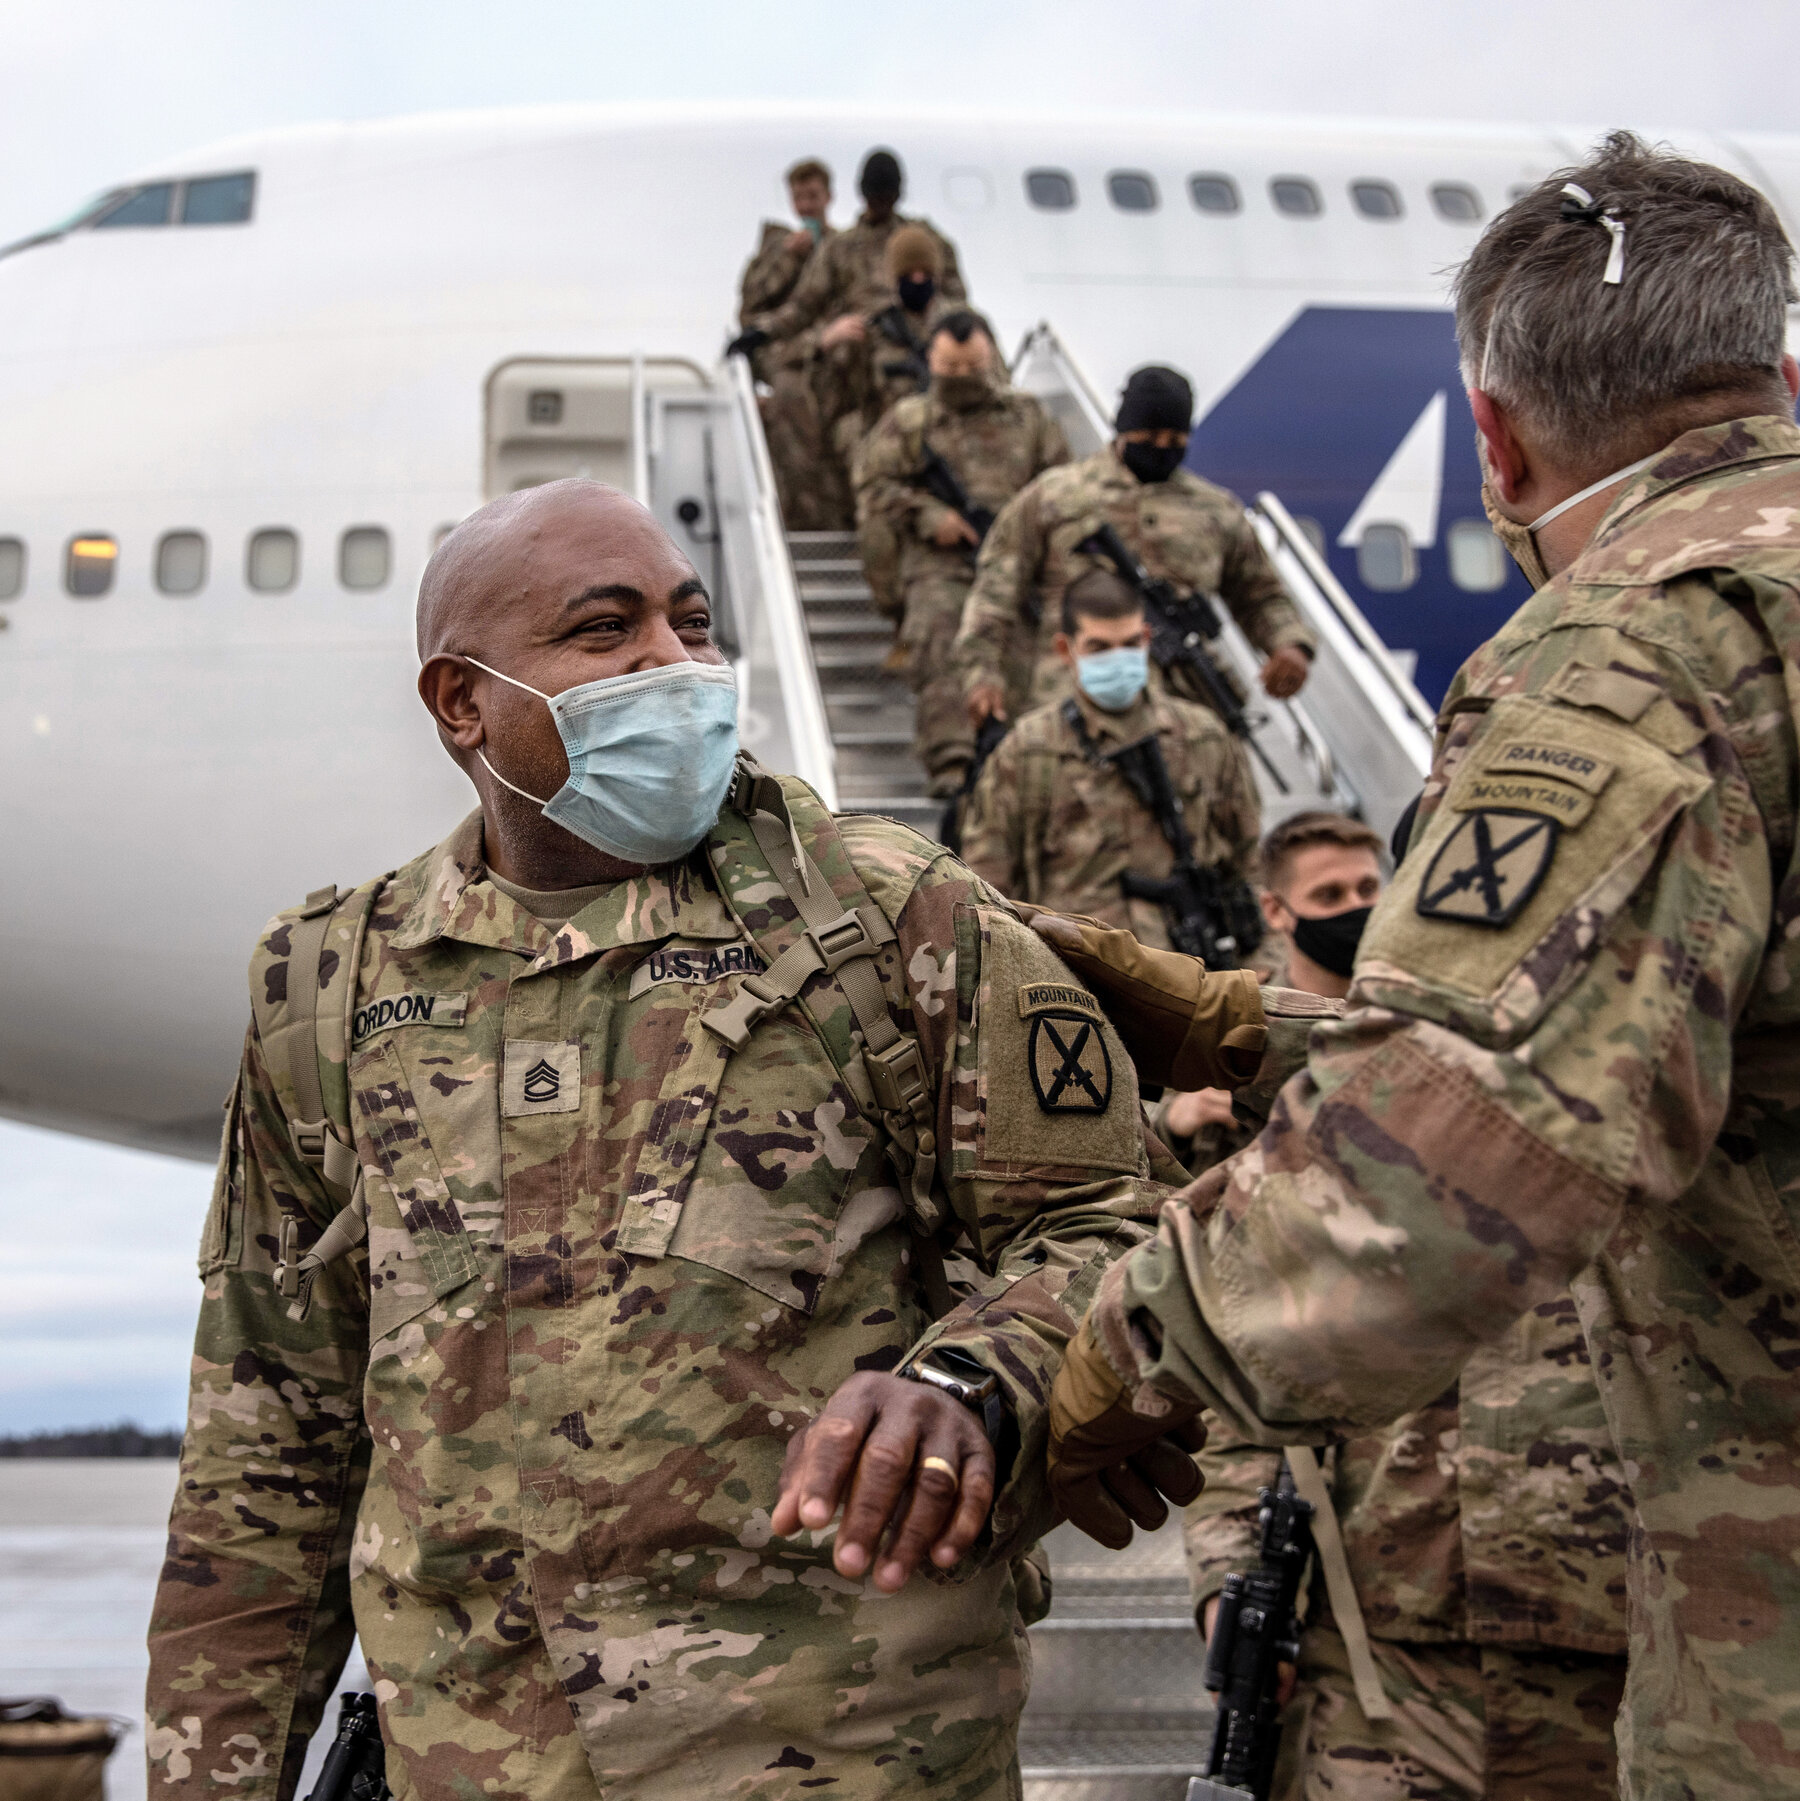 US President announces troop withdrawal from Afghanistan, claiming completion of the objective.